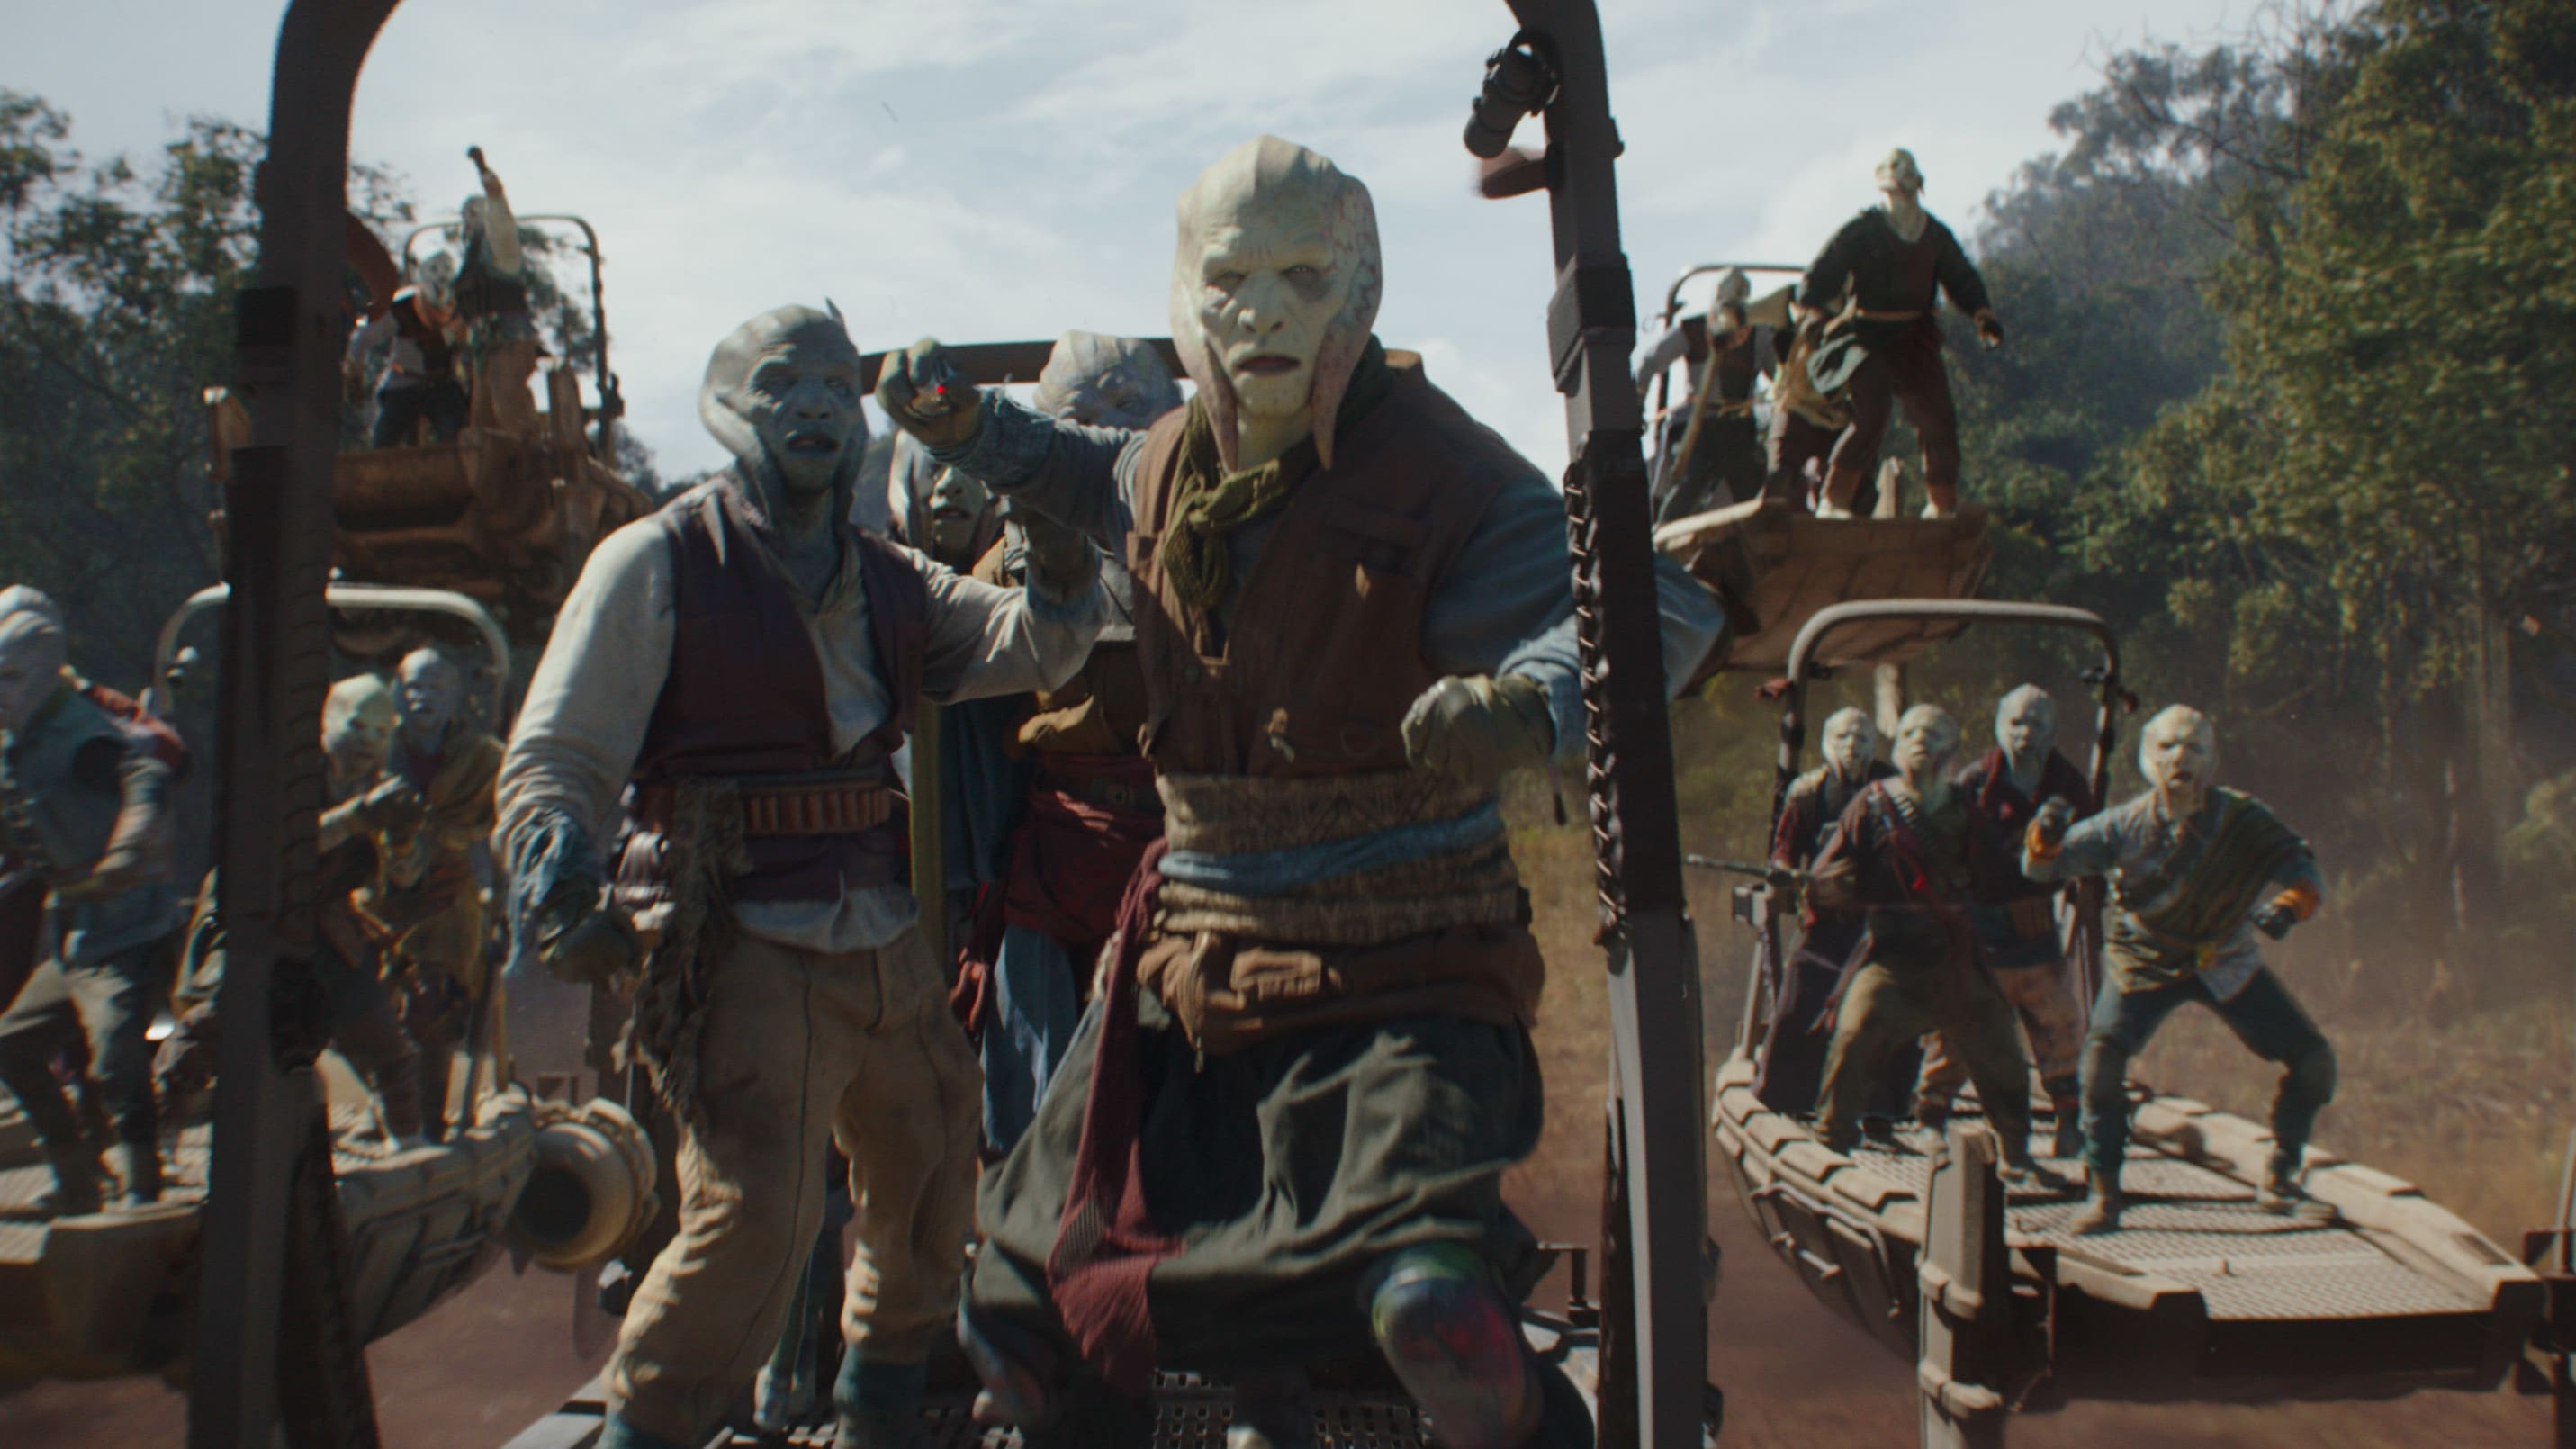 Shydopp pirates in Lucasfilm's THE MANDALORIAN, season two, exclusively on Disney+. © 2020 Lucasfilm Ltd. & ™. All Rights Reserved.